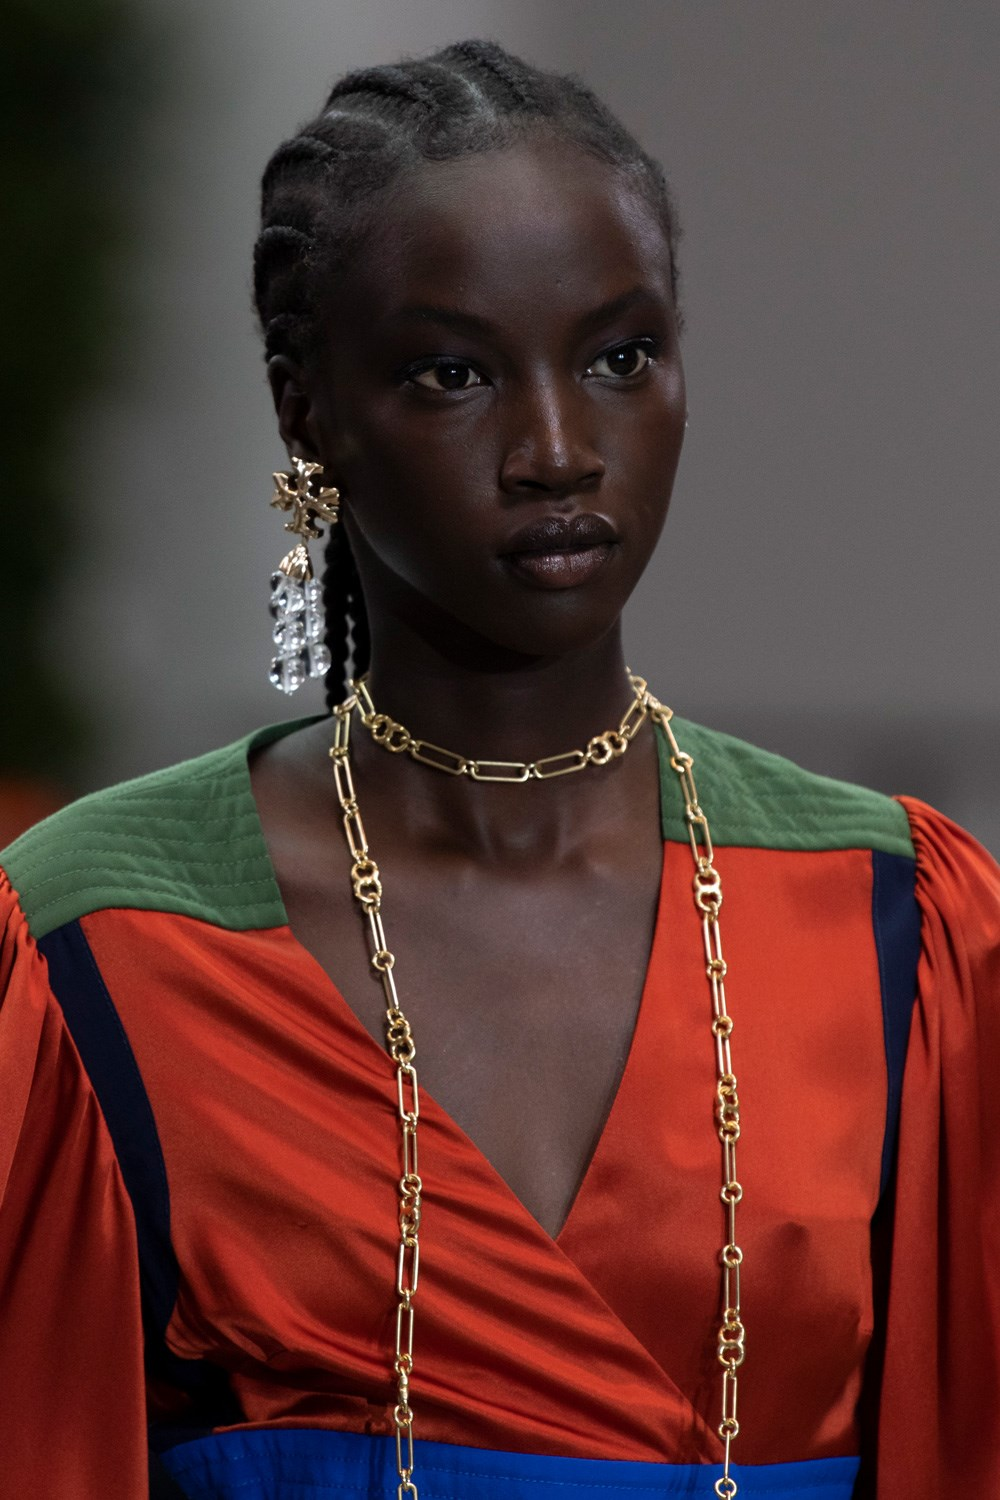 The Top 10 Most-Viewed Collections of Spring 2020